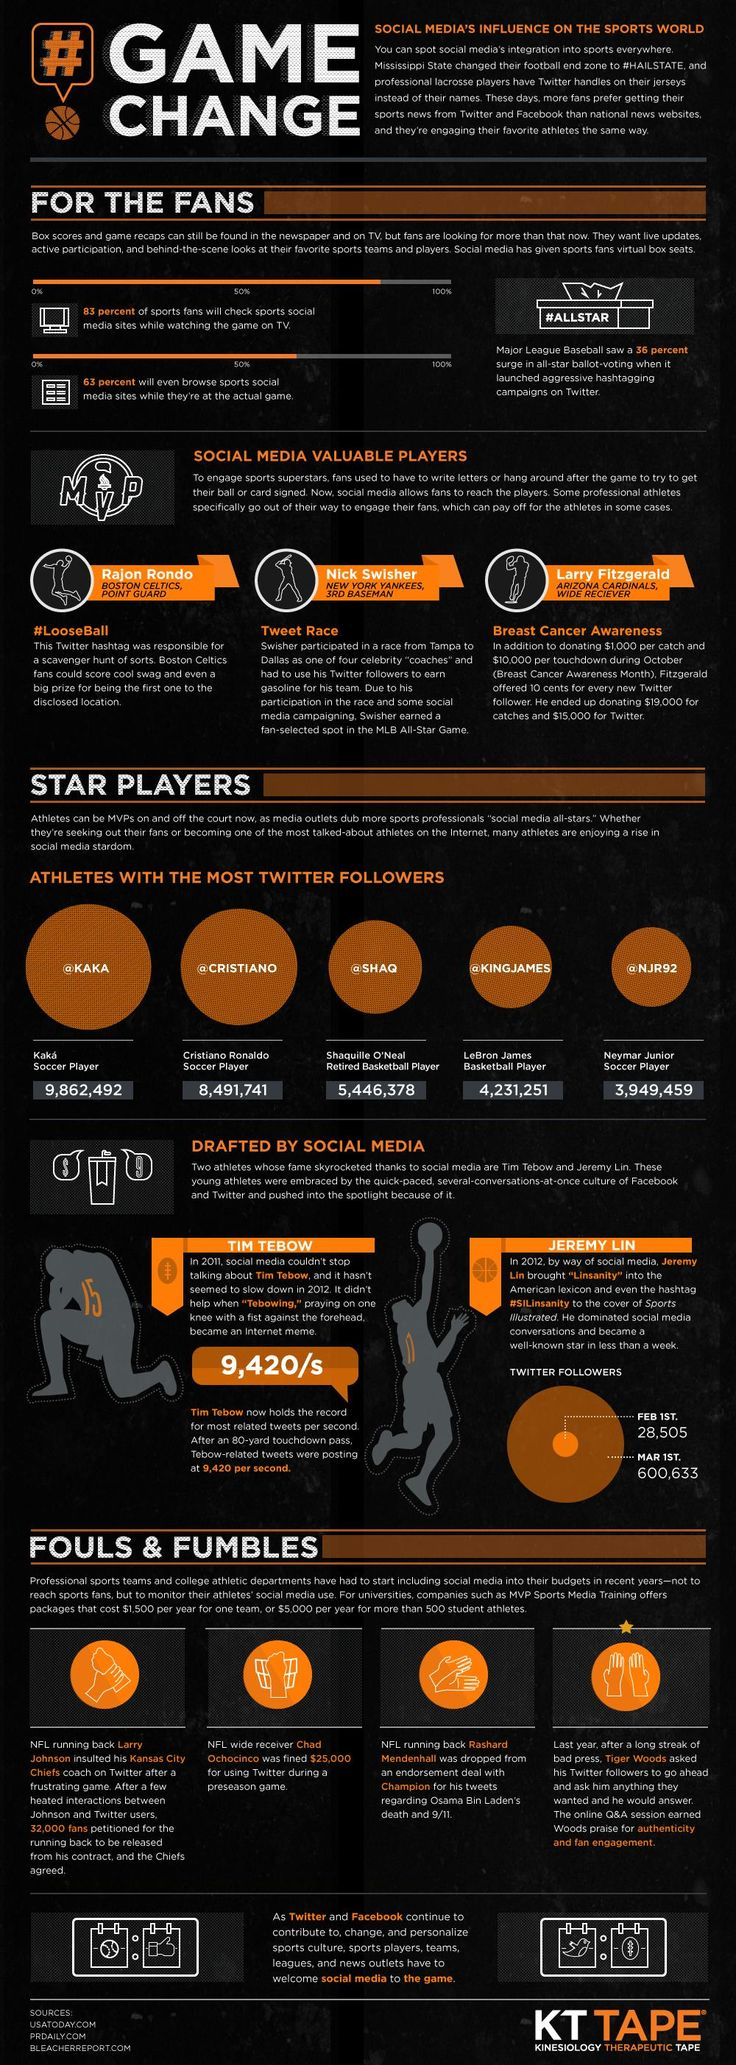 Game Change: Social media's growing influence on sports #Infographic